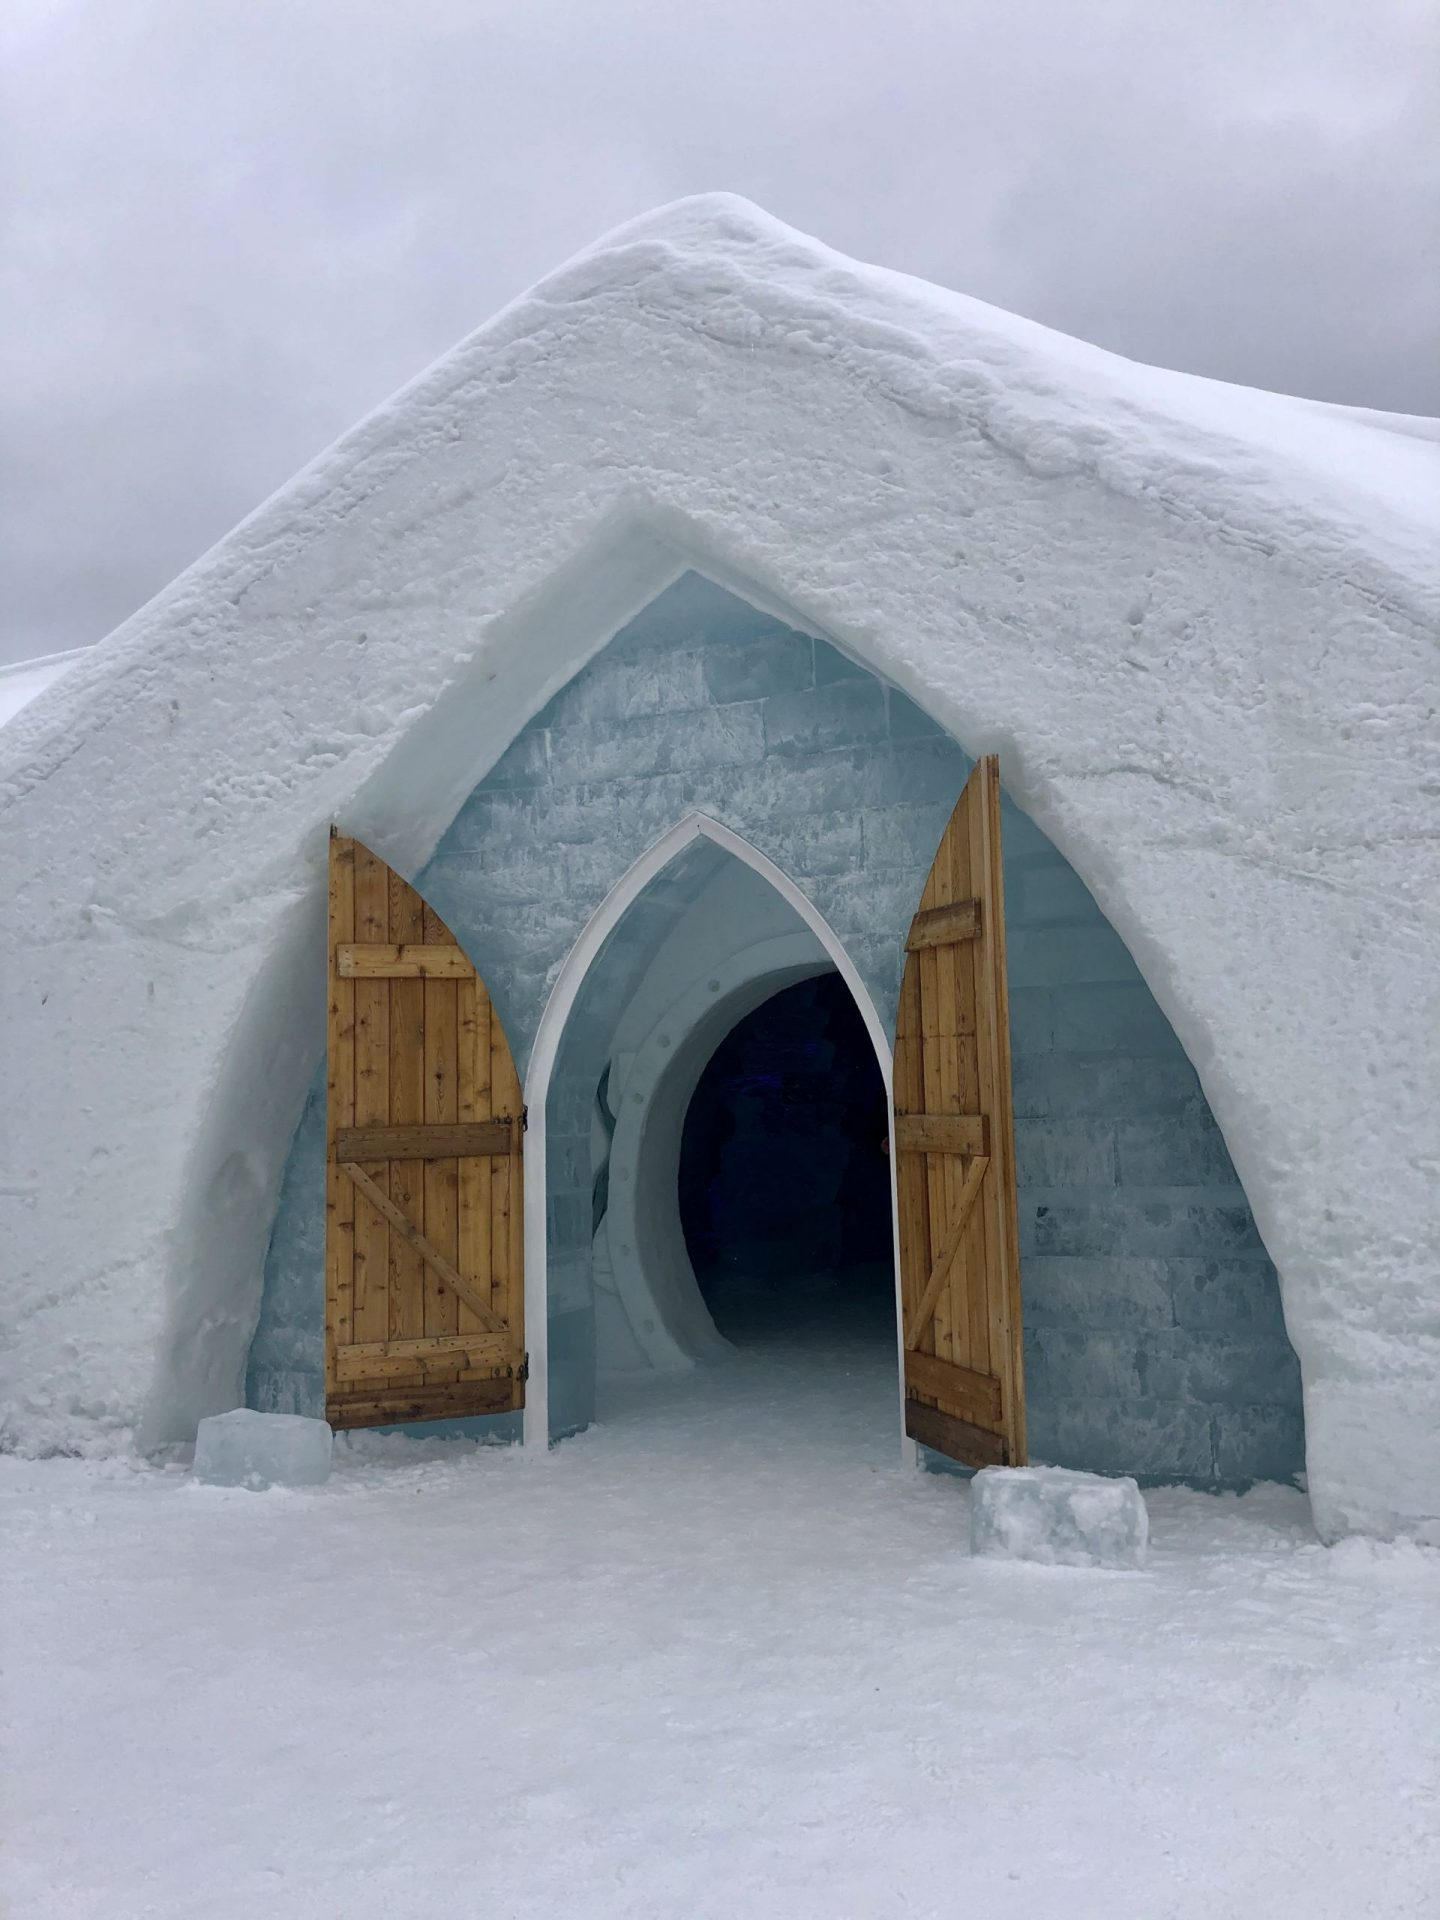 Travel Notes: Hotel de Glace (Ice Hotel) in Quebec City